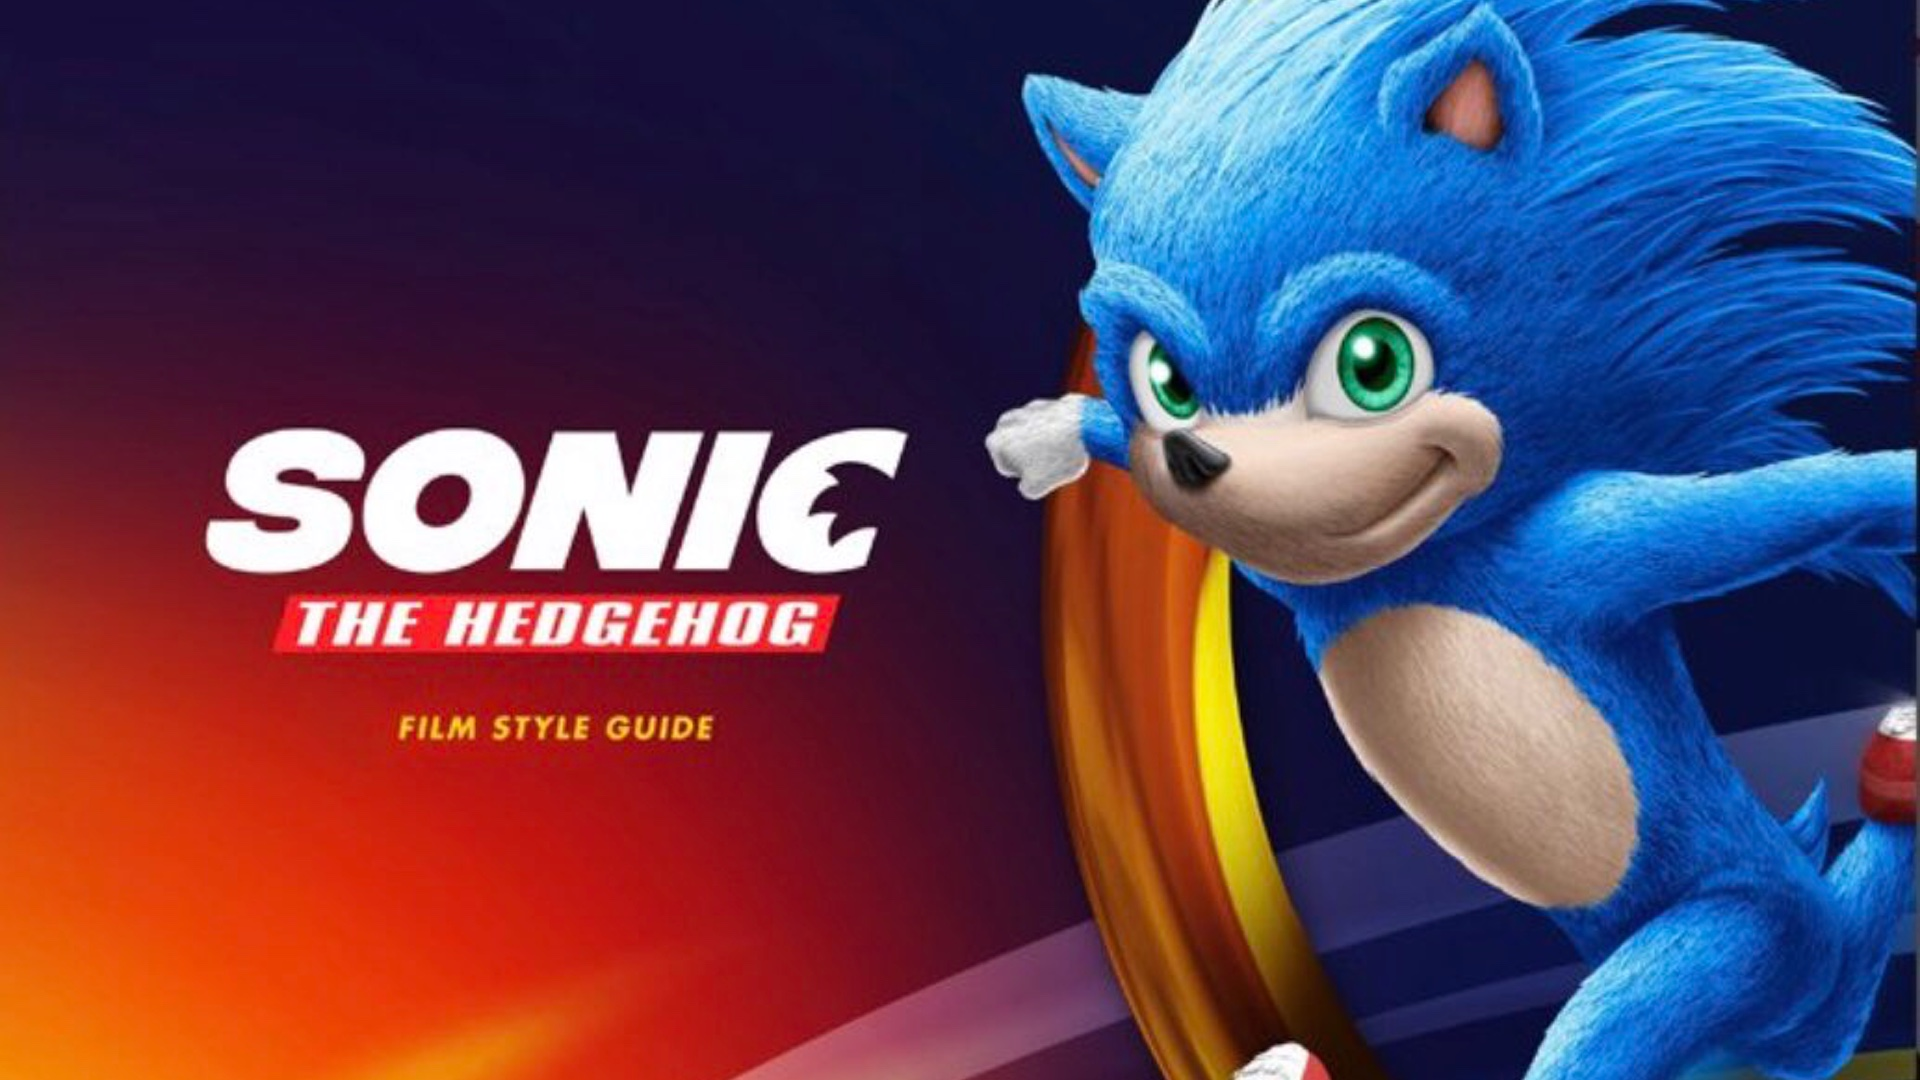 New SONIC THE HEDGEHOG Movie Promo Images Show Us The Characters 1920x1080